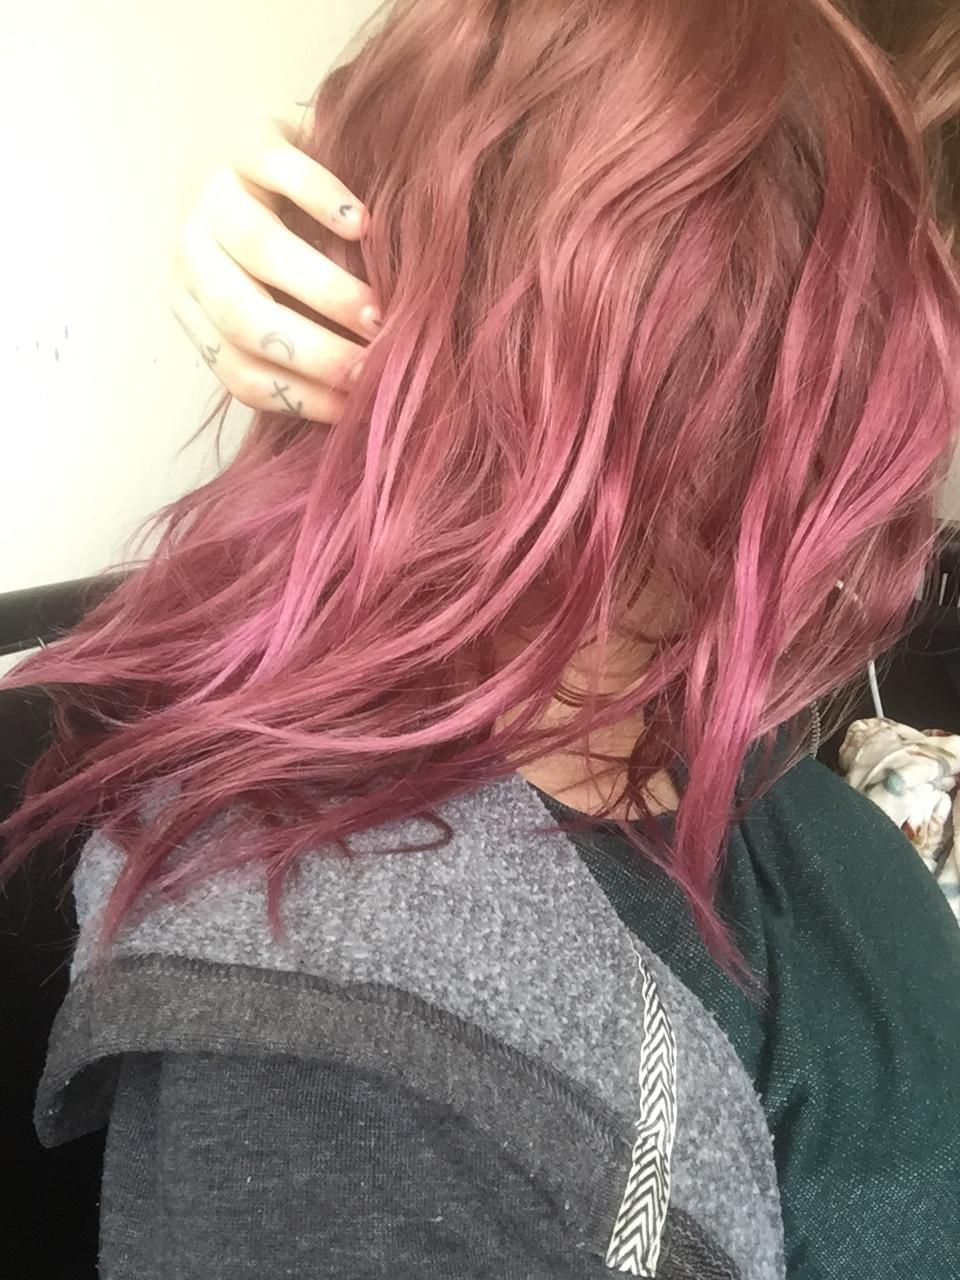 What Will Happen If I Put Bleach On My Faded Purple Pink Hair Hair Beauty Skin Deals Me Fashion Love Cute Style Women Magenta Hair Faded Hair Hair